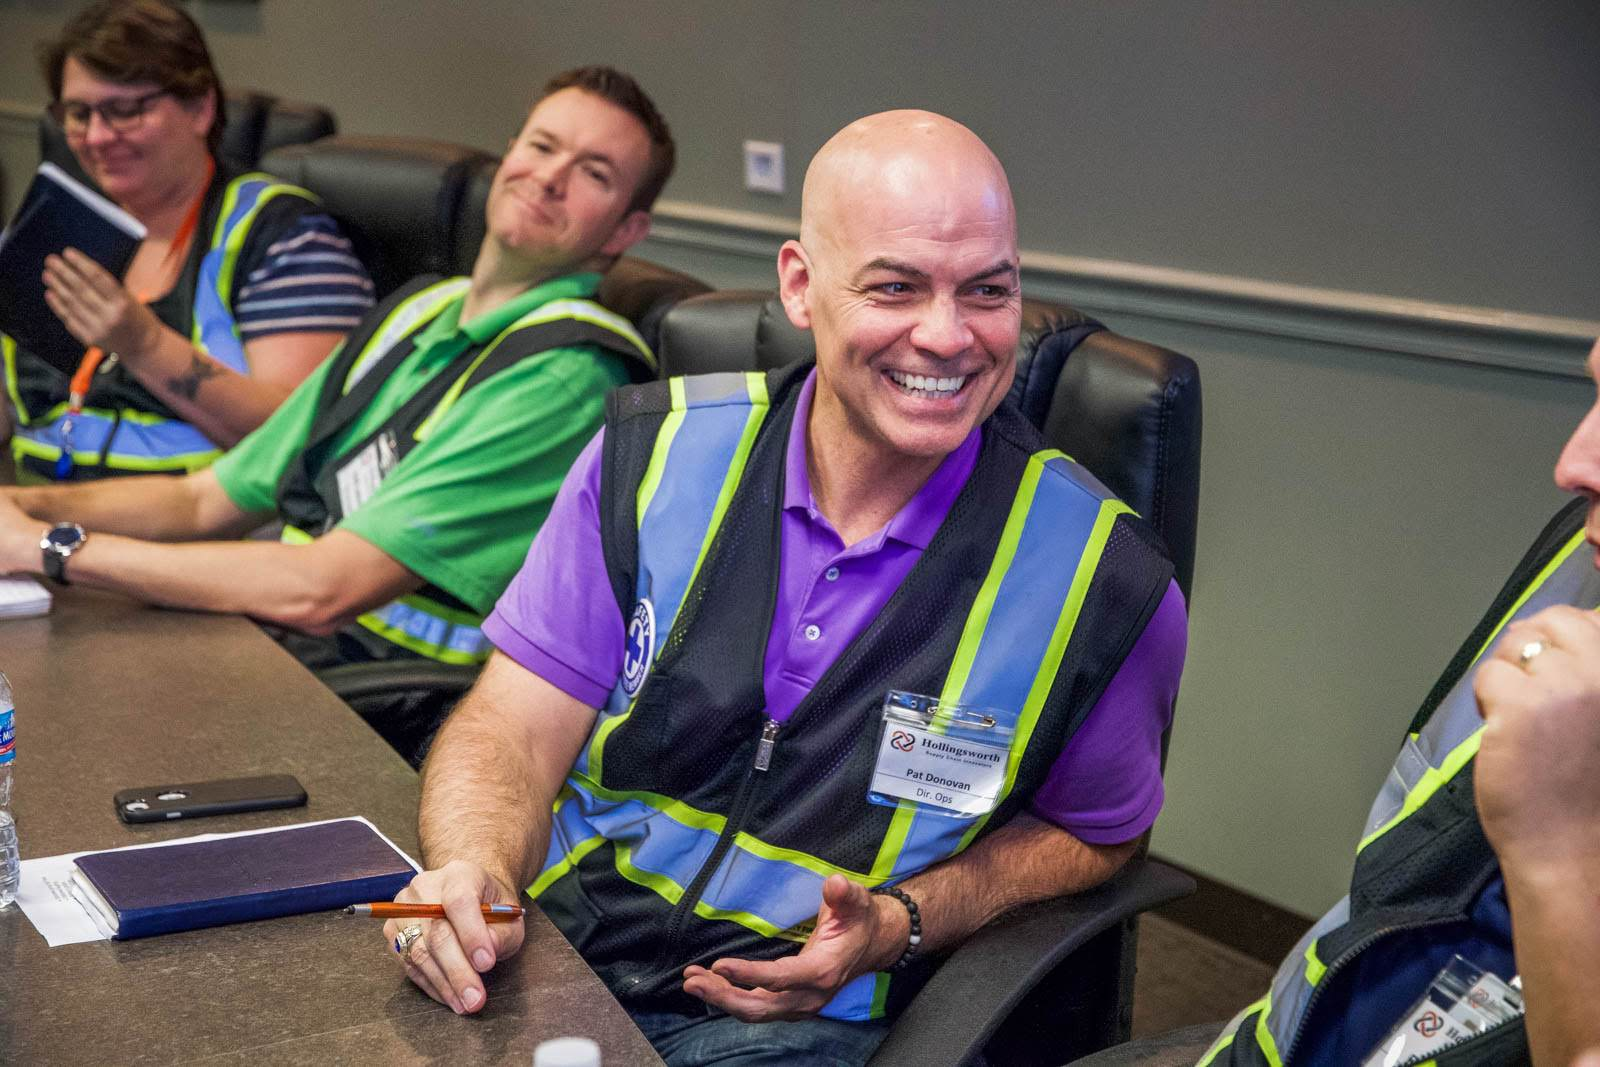 Smiling employees sit at a conference table together